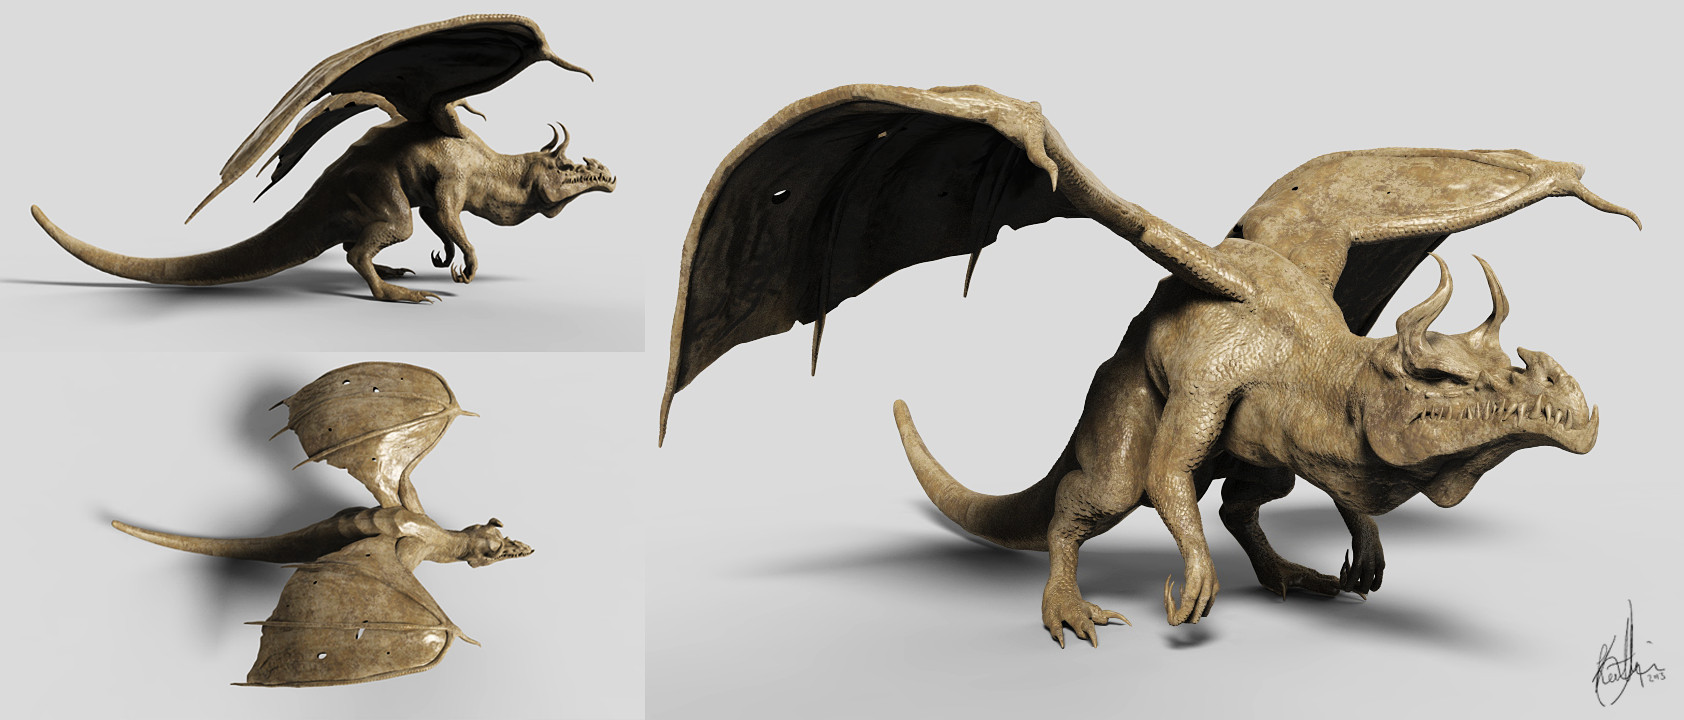 Dragon Zbrush Sculpt - Elder Dragon by Akiratang